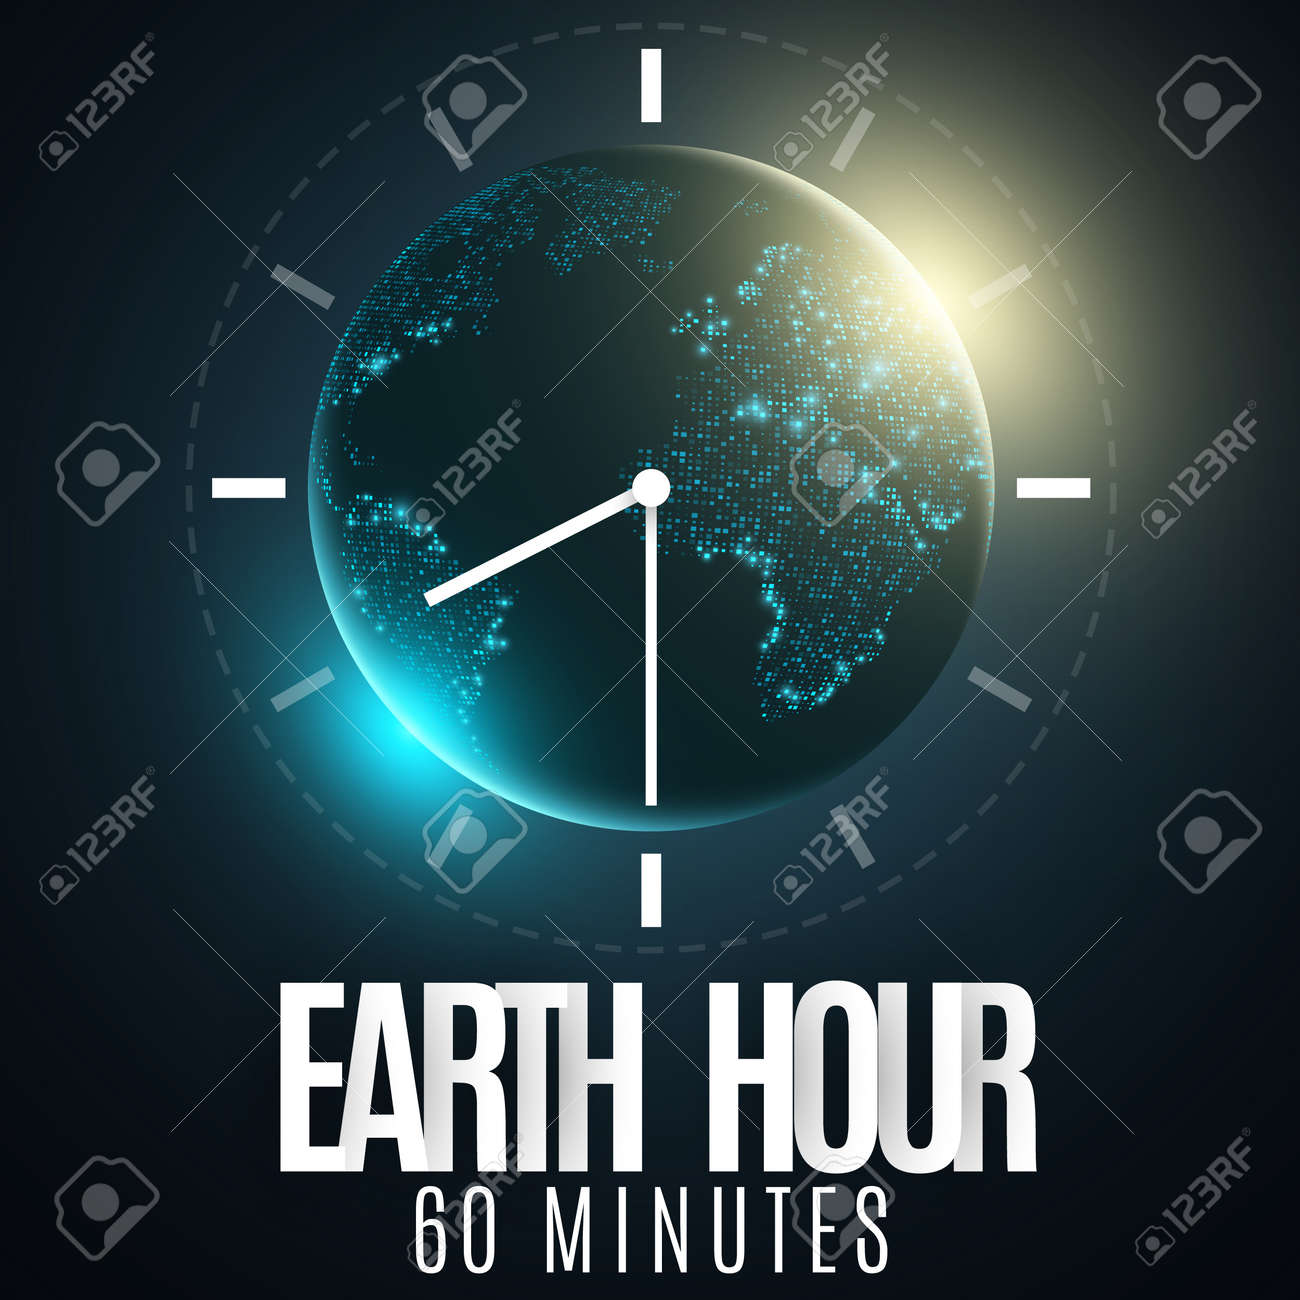 Earth Hour  Futuristic planet Earth  60 minutes without electricity